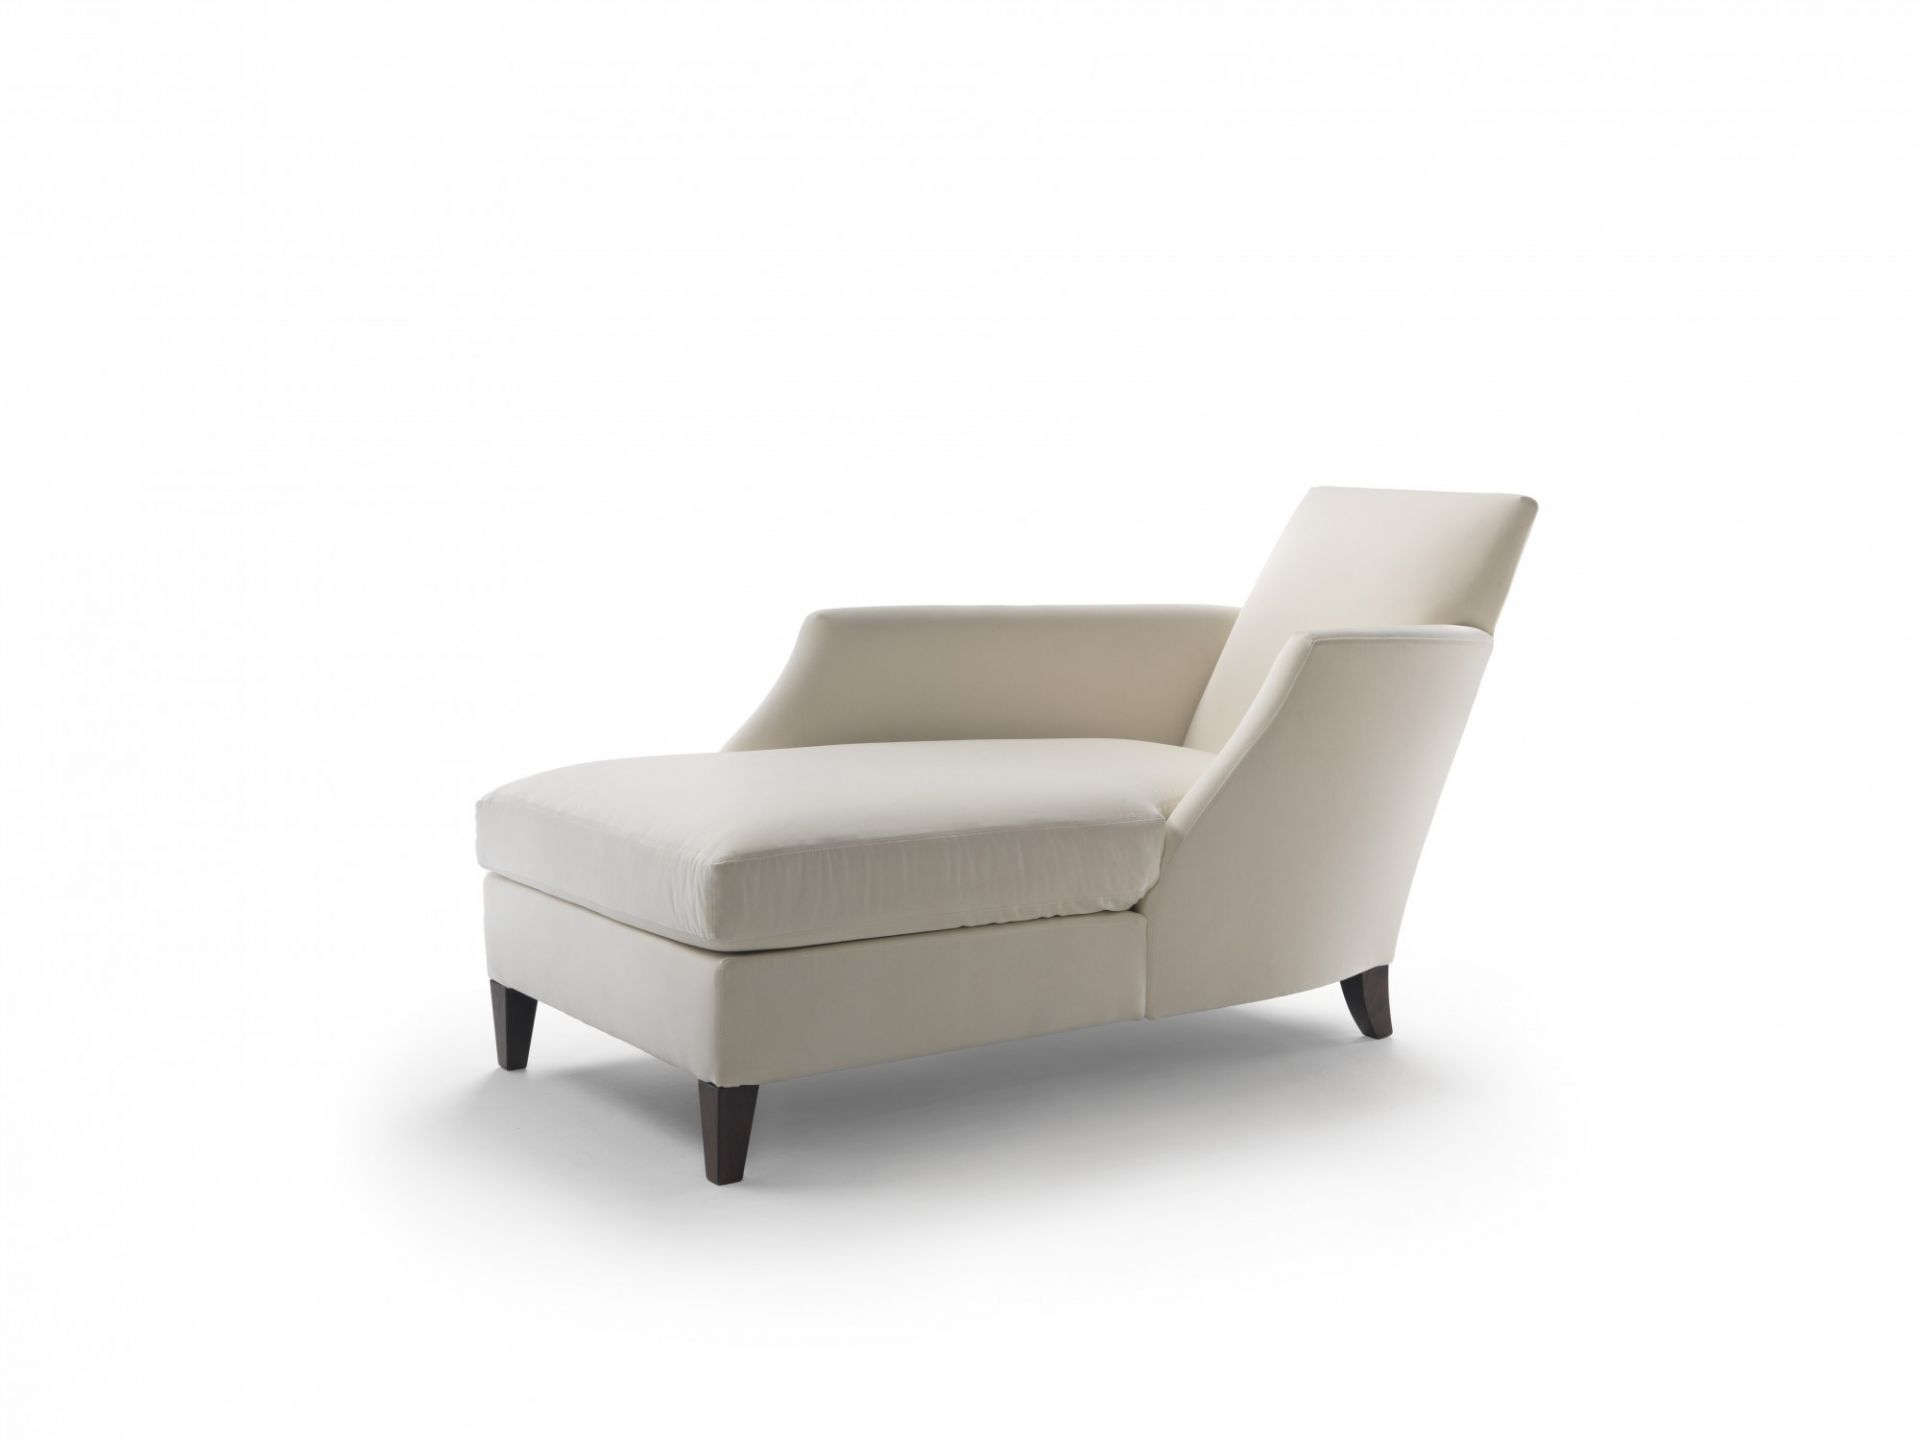 Relax chaise studio italia for Chaise relax